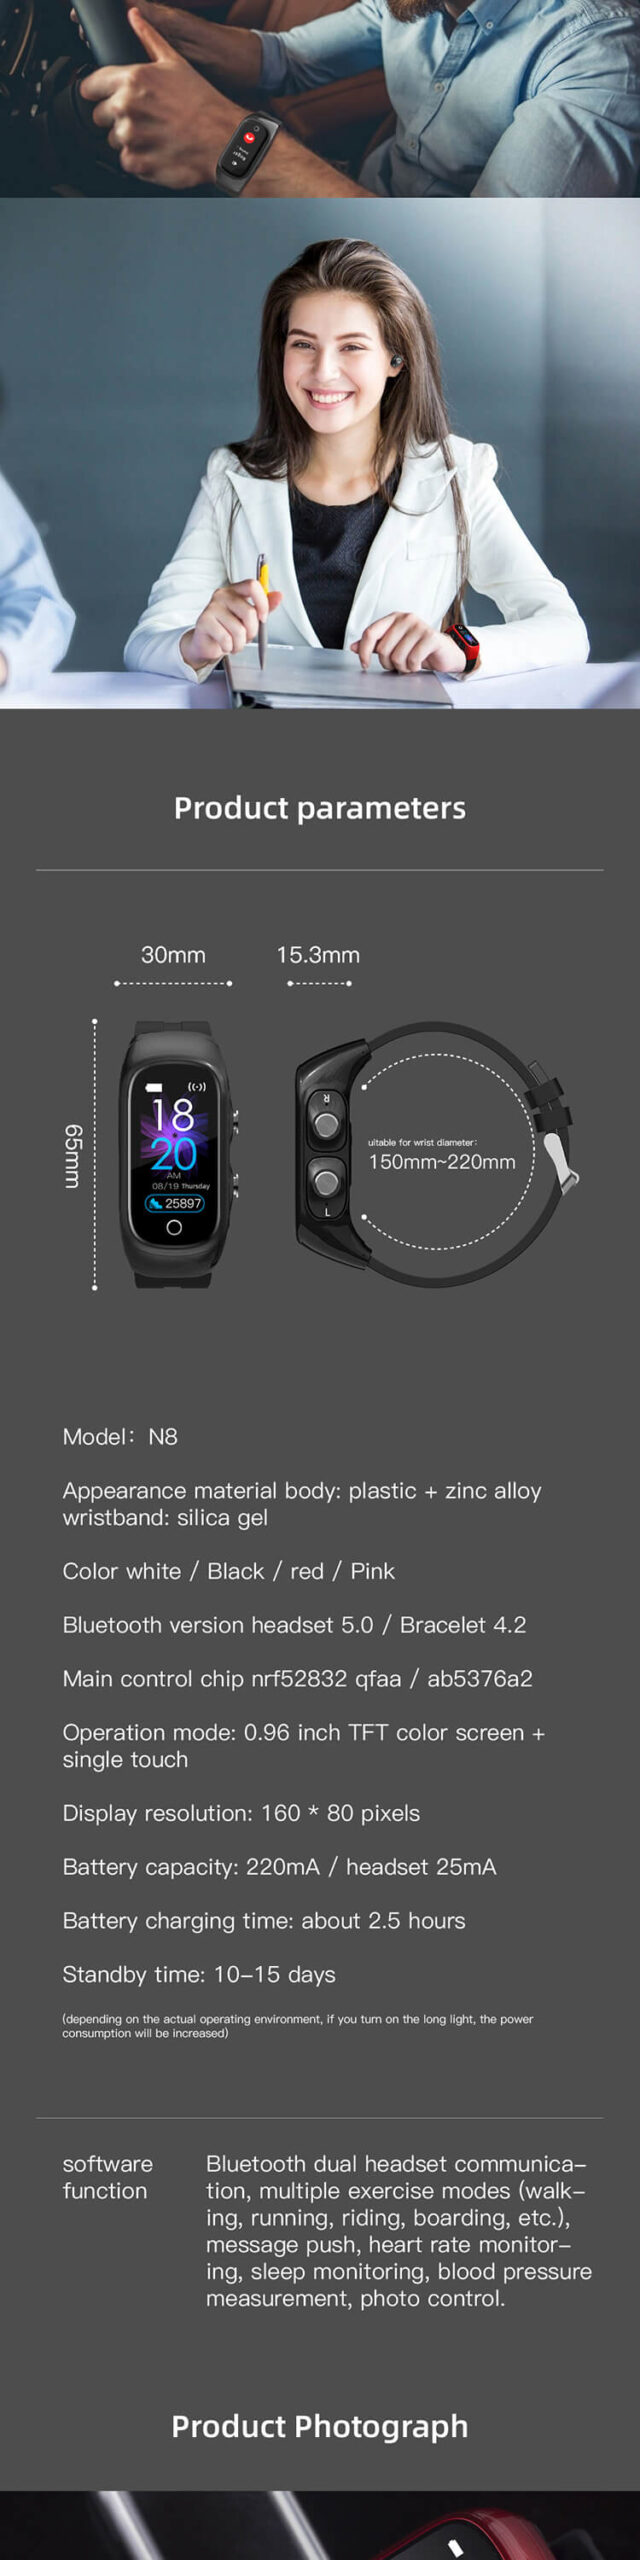 Smartwatch With Built In Earbuds 7